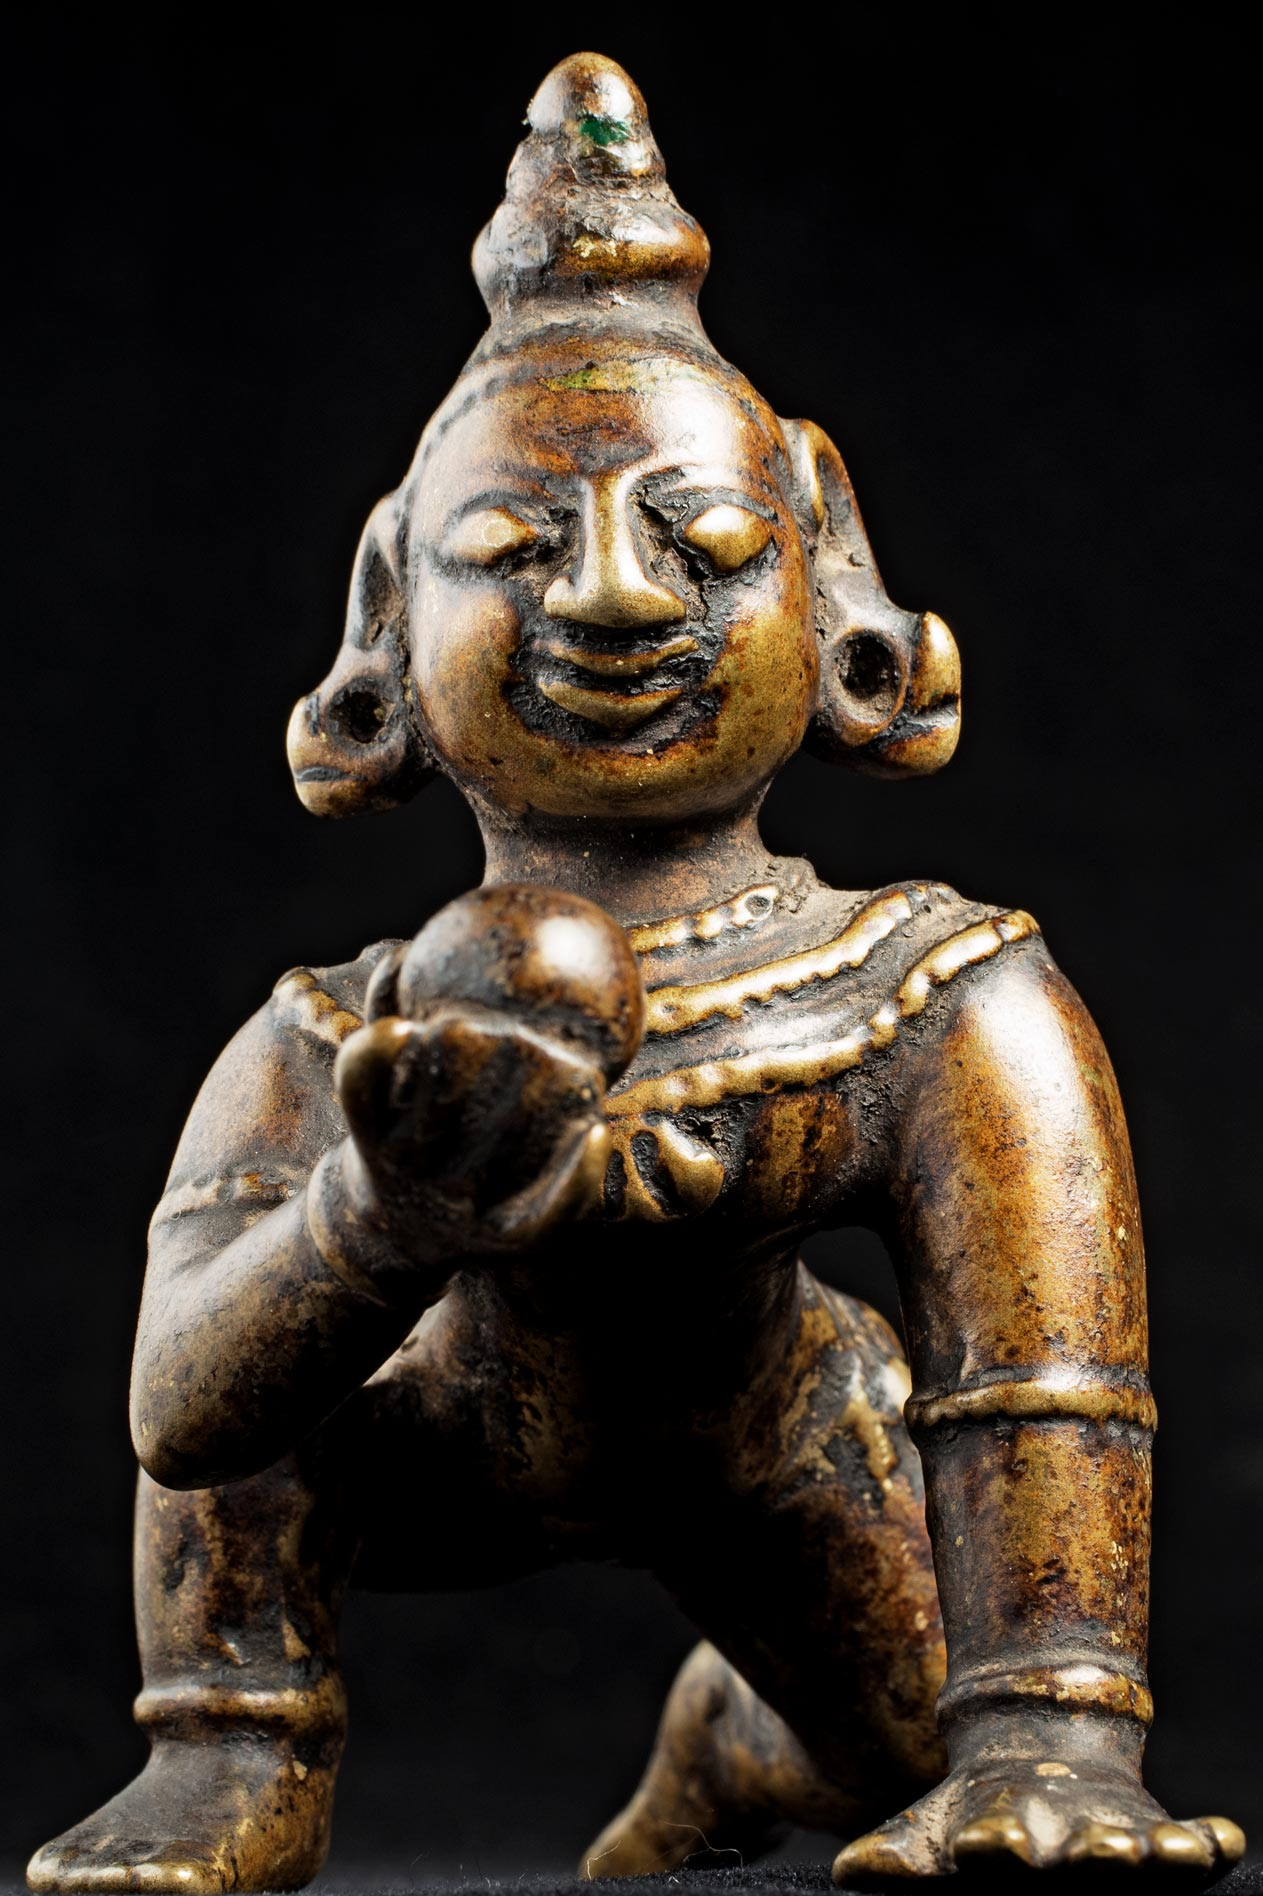 Antique & Vintage Buddhas Statues, Large Wooden Buddha